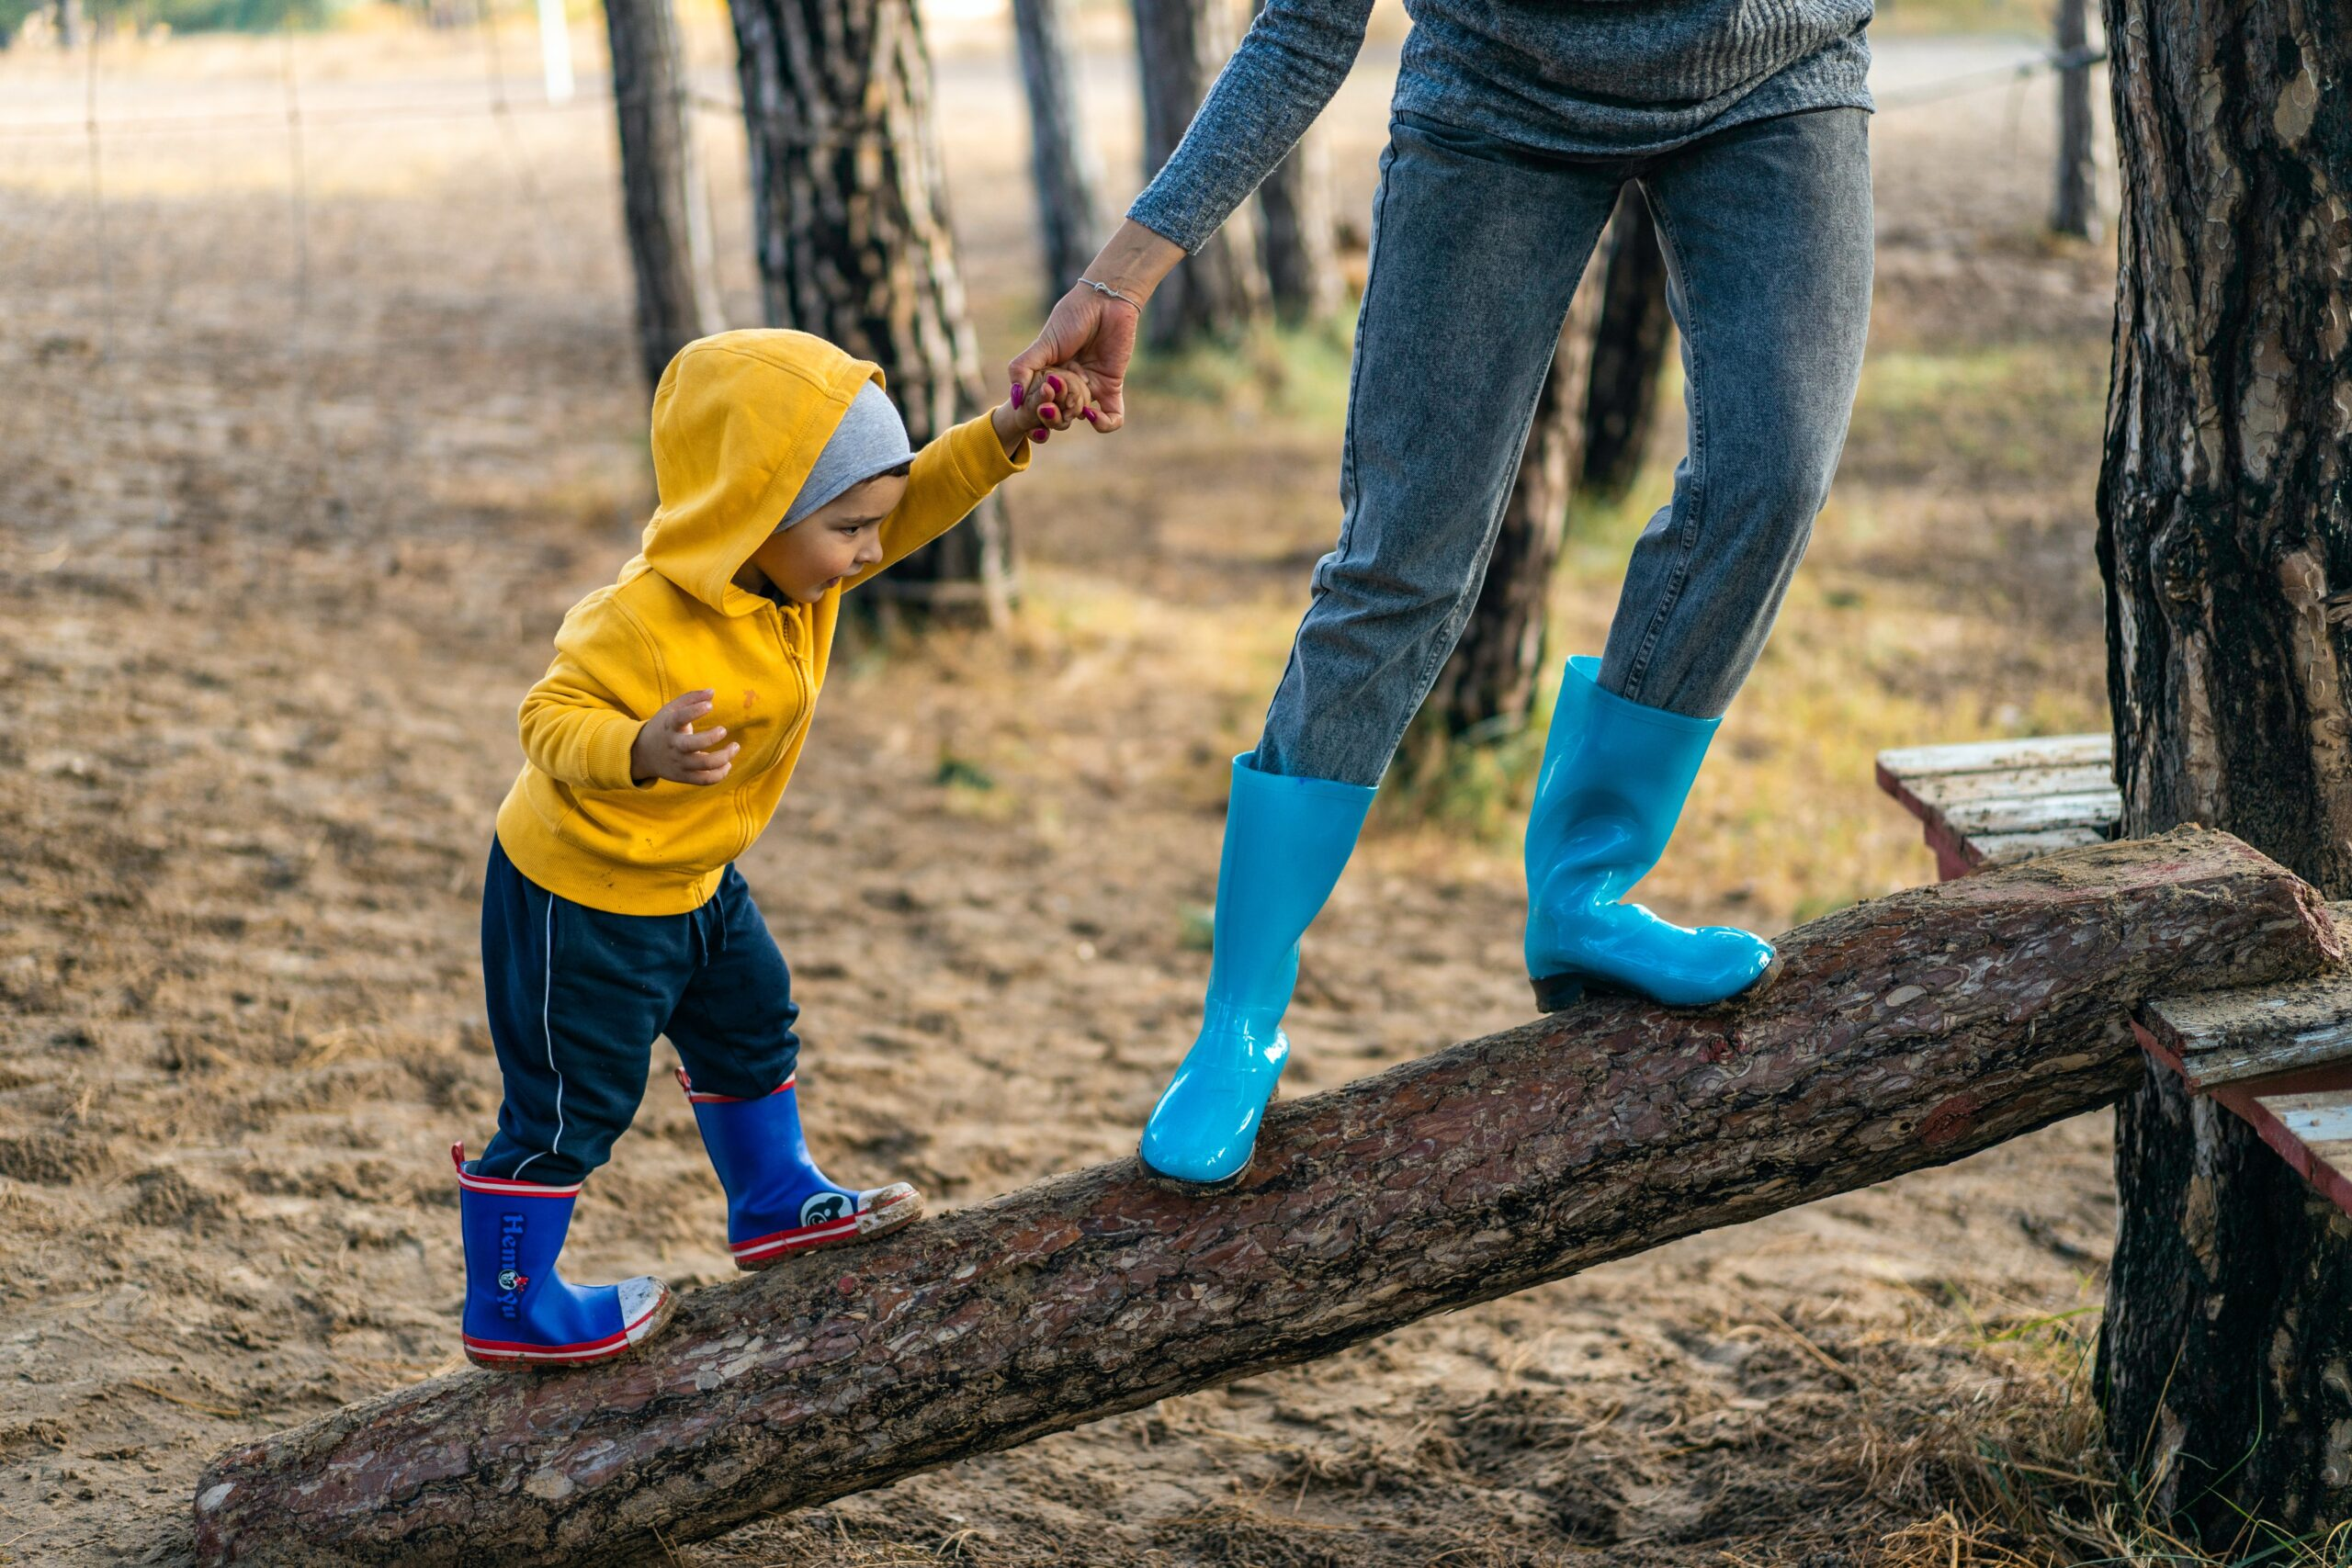 An adult and child, both wearing rubber rainboots, balance on a slanted log in the woods. The adult holds the hand of the child.